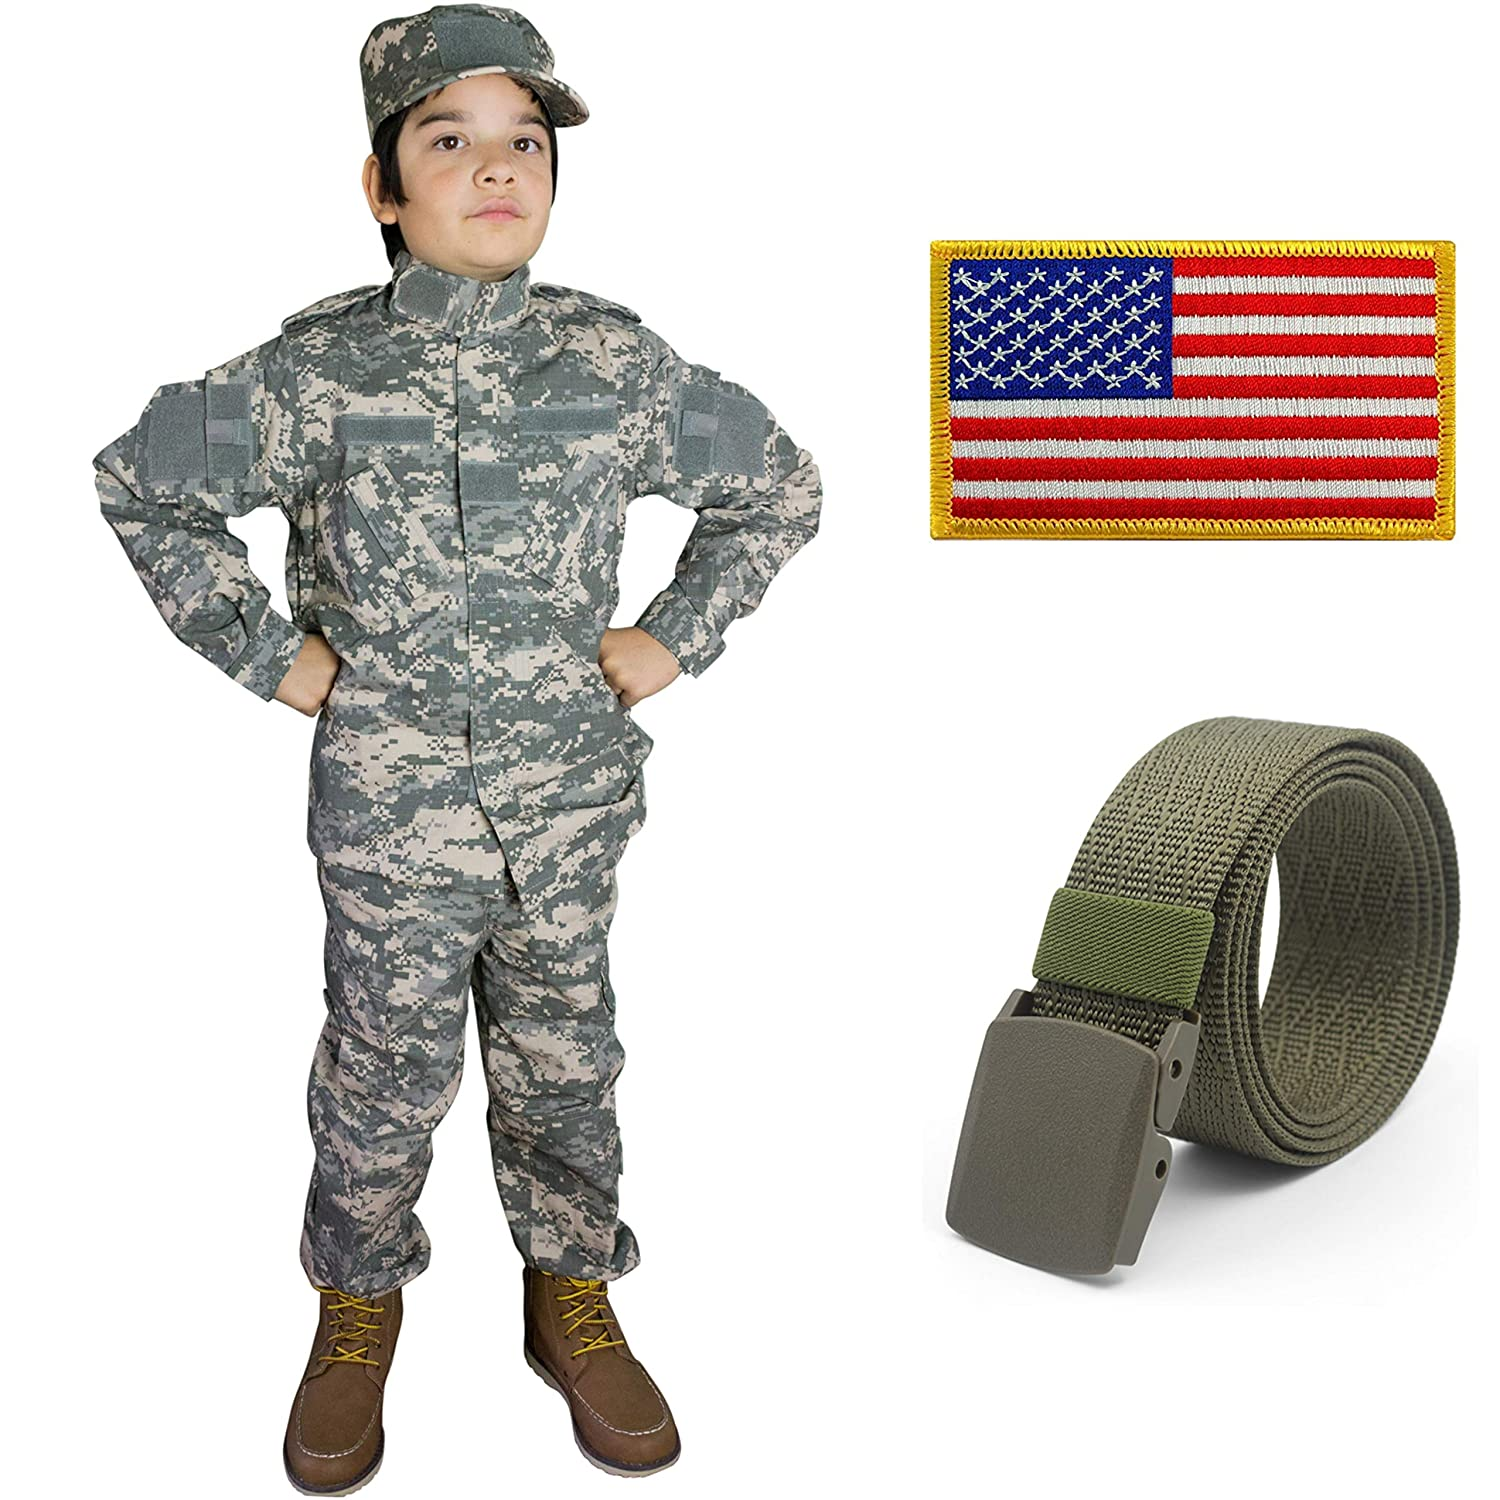 Kids Military Costume Army Uniform Camo Tactical Suit - Cap, Shirt, Pants, Belt, Patch Set - Boys